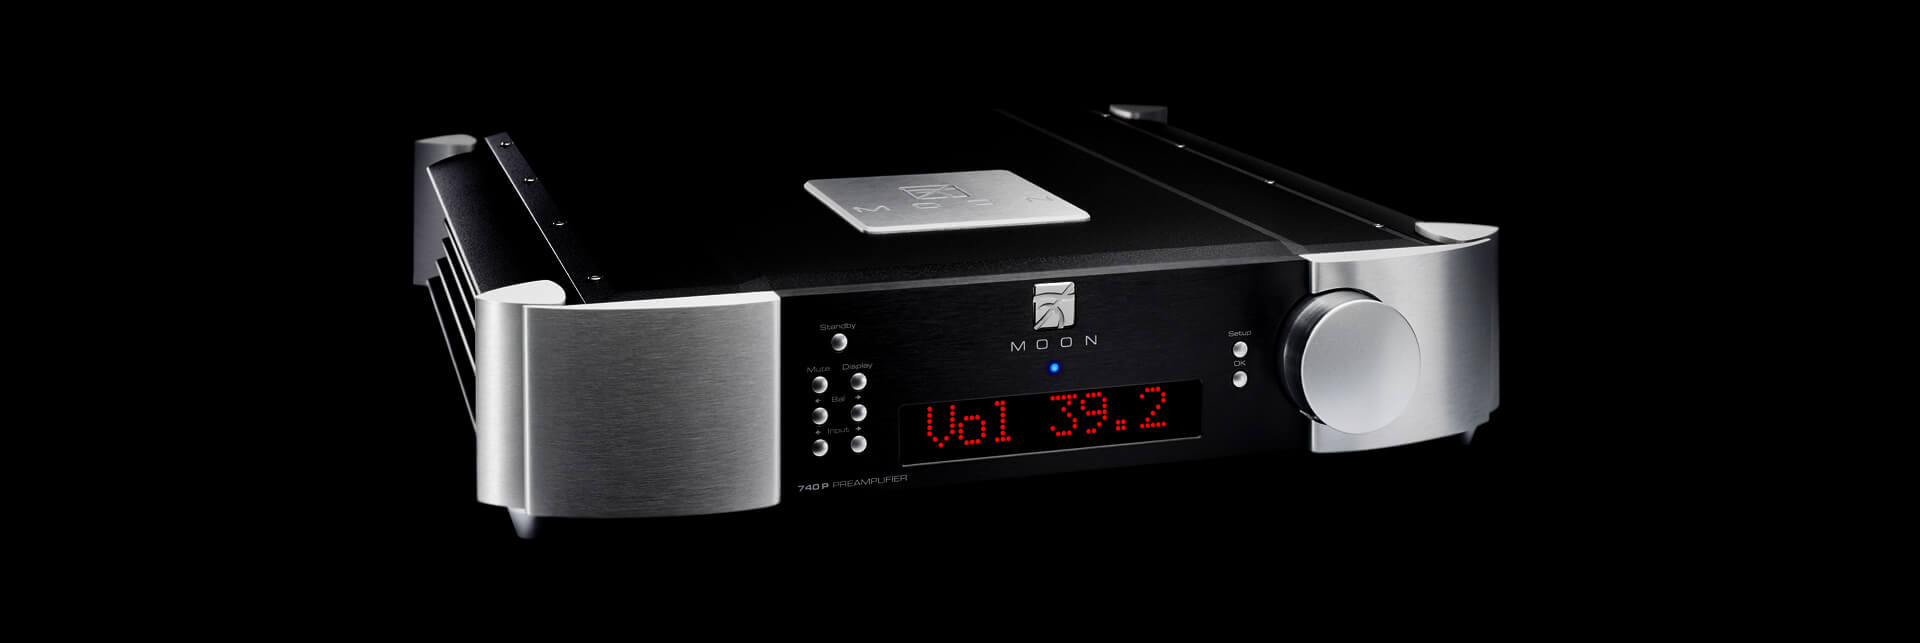 740p Preamp Best Audiophile Audio Preamplifier Moon Simaudio